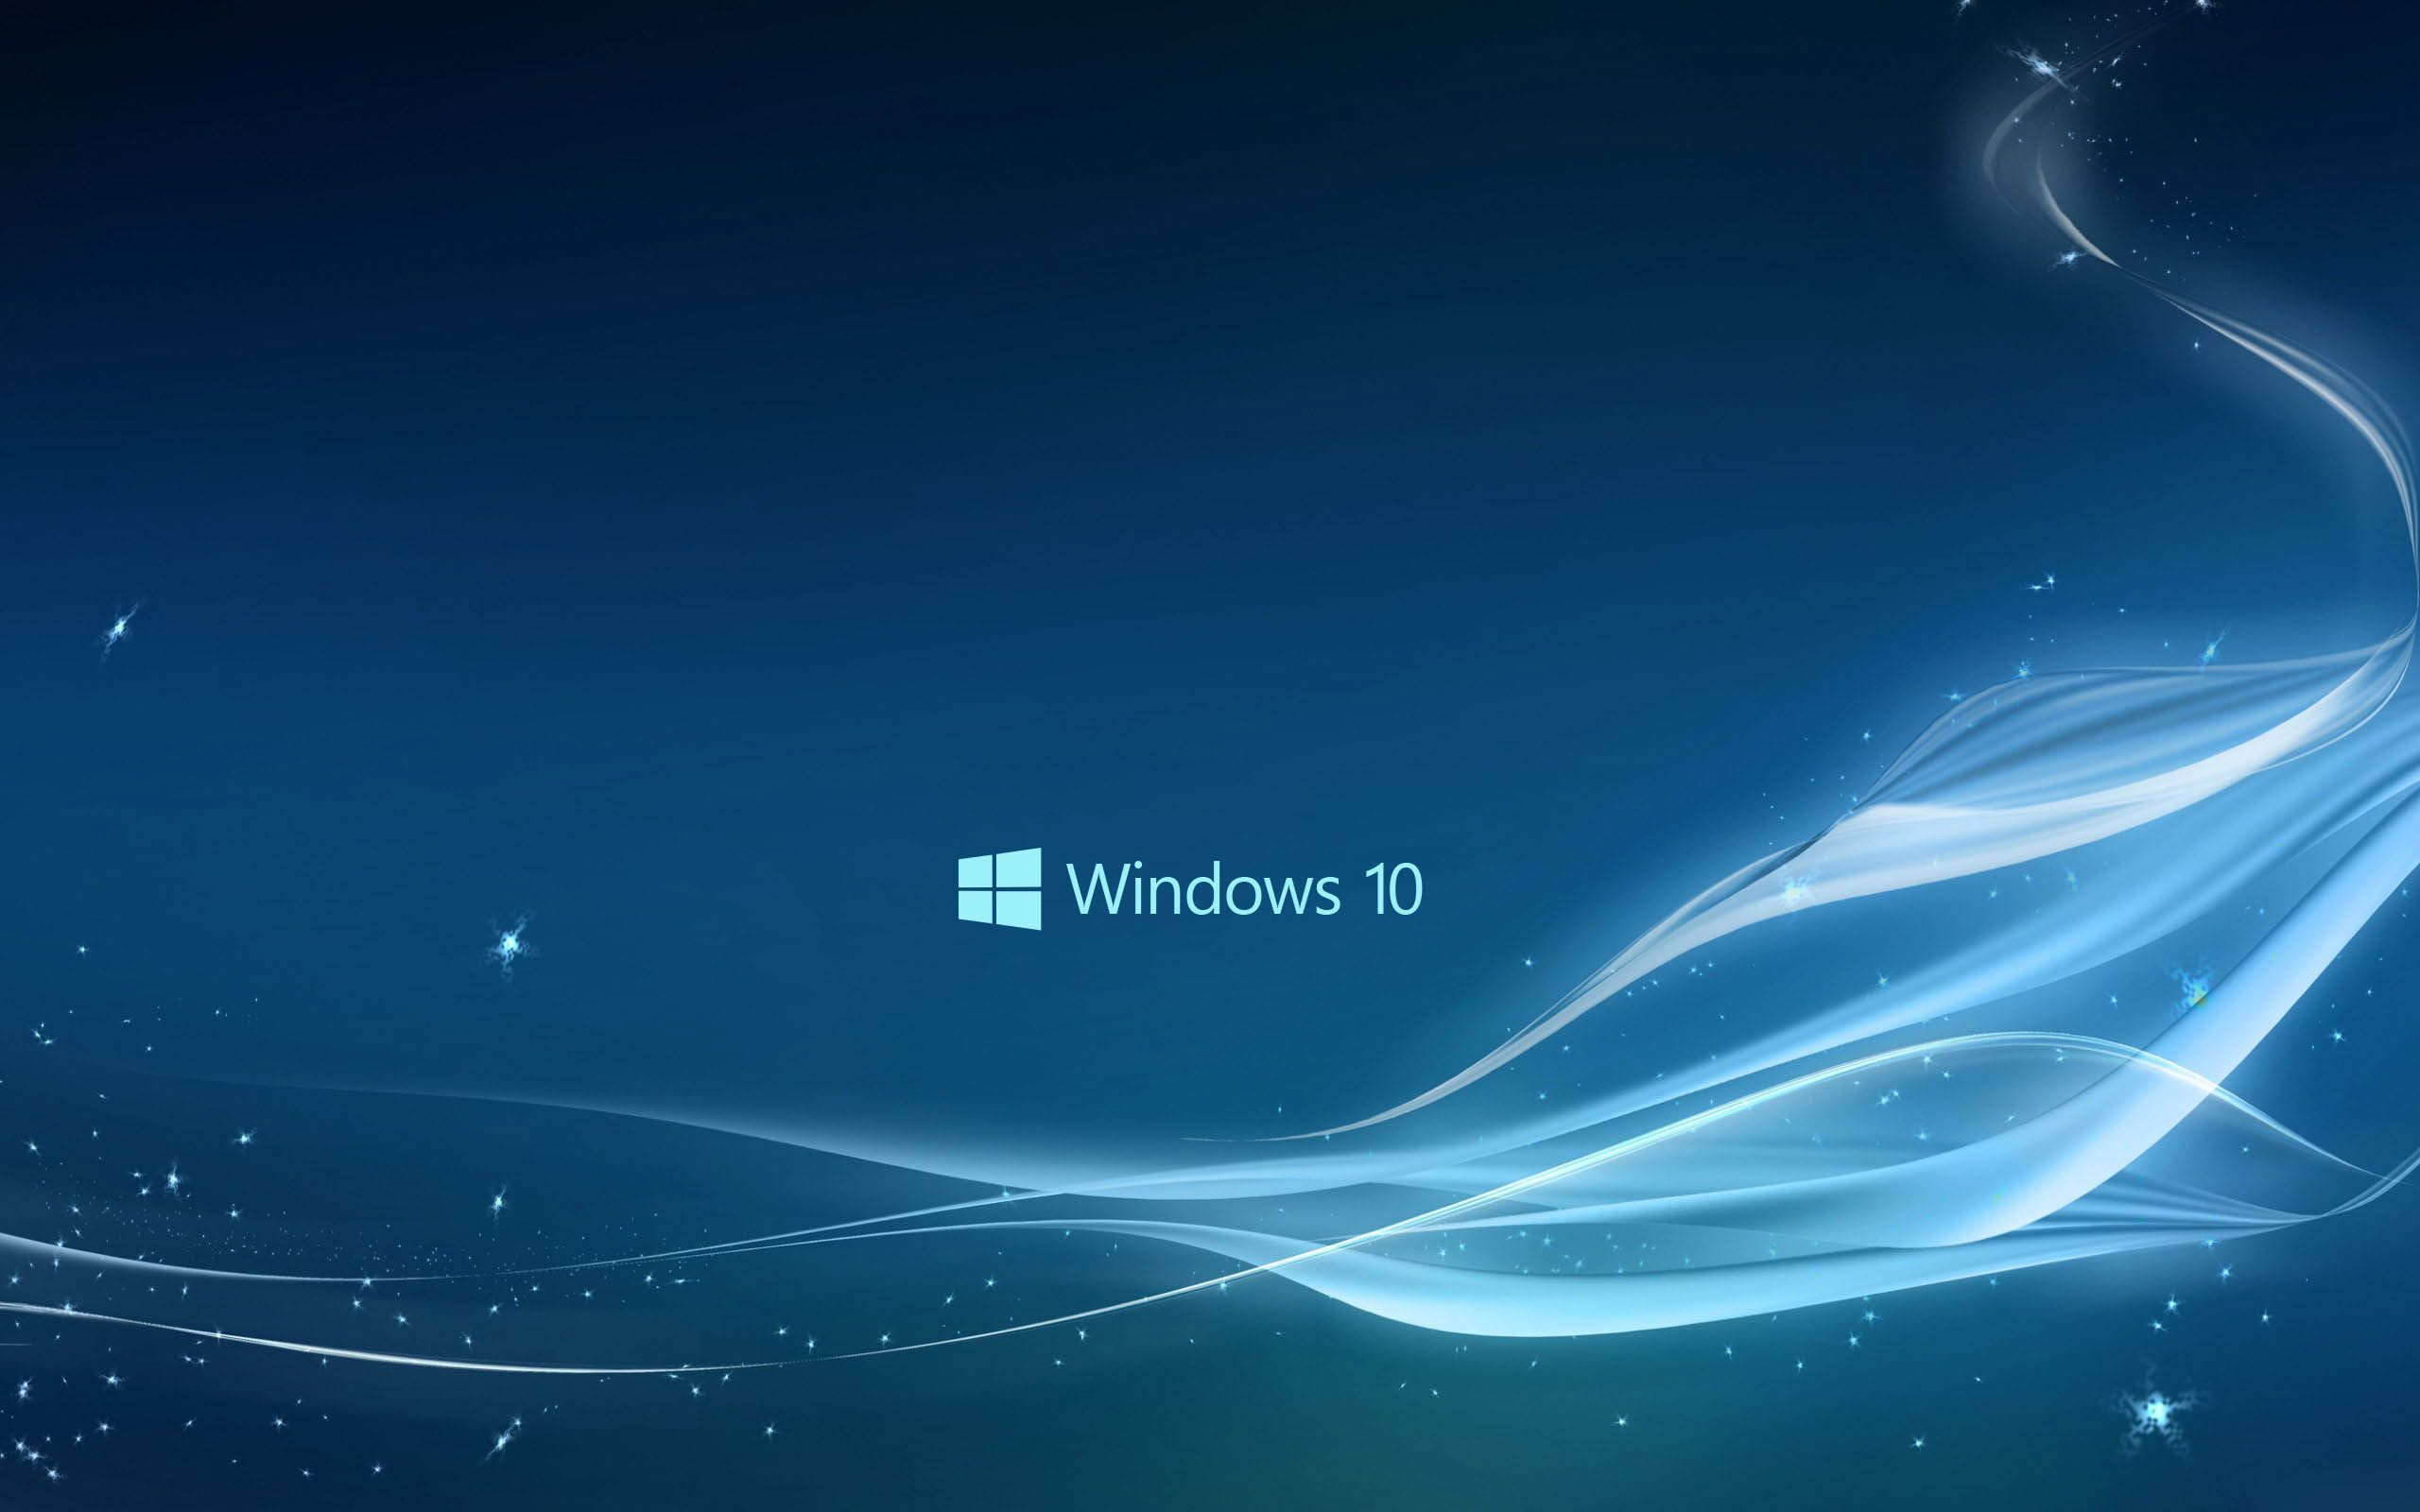 23 Windows 10 Wallpaper Designs That Will Rock Your World Wallpaper Windows 10 Windows Wallpaper Pc Desktop Wallpaper